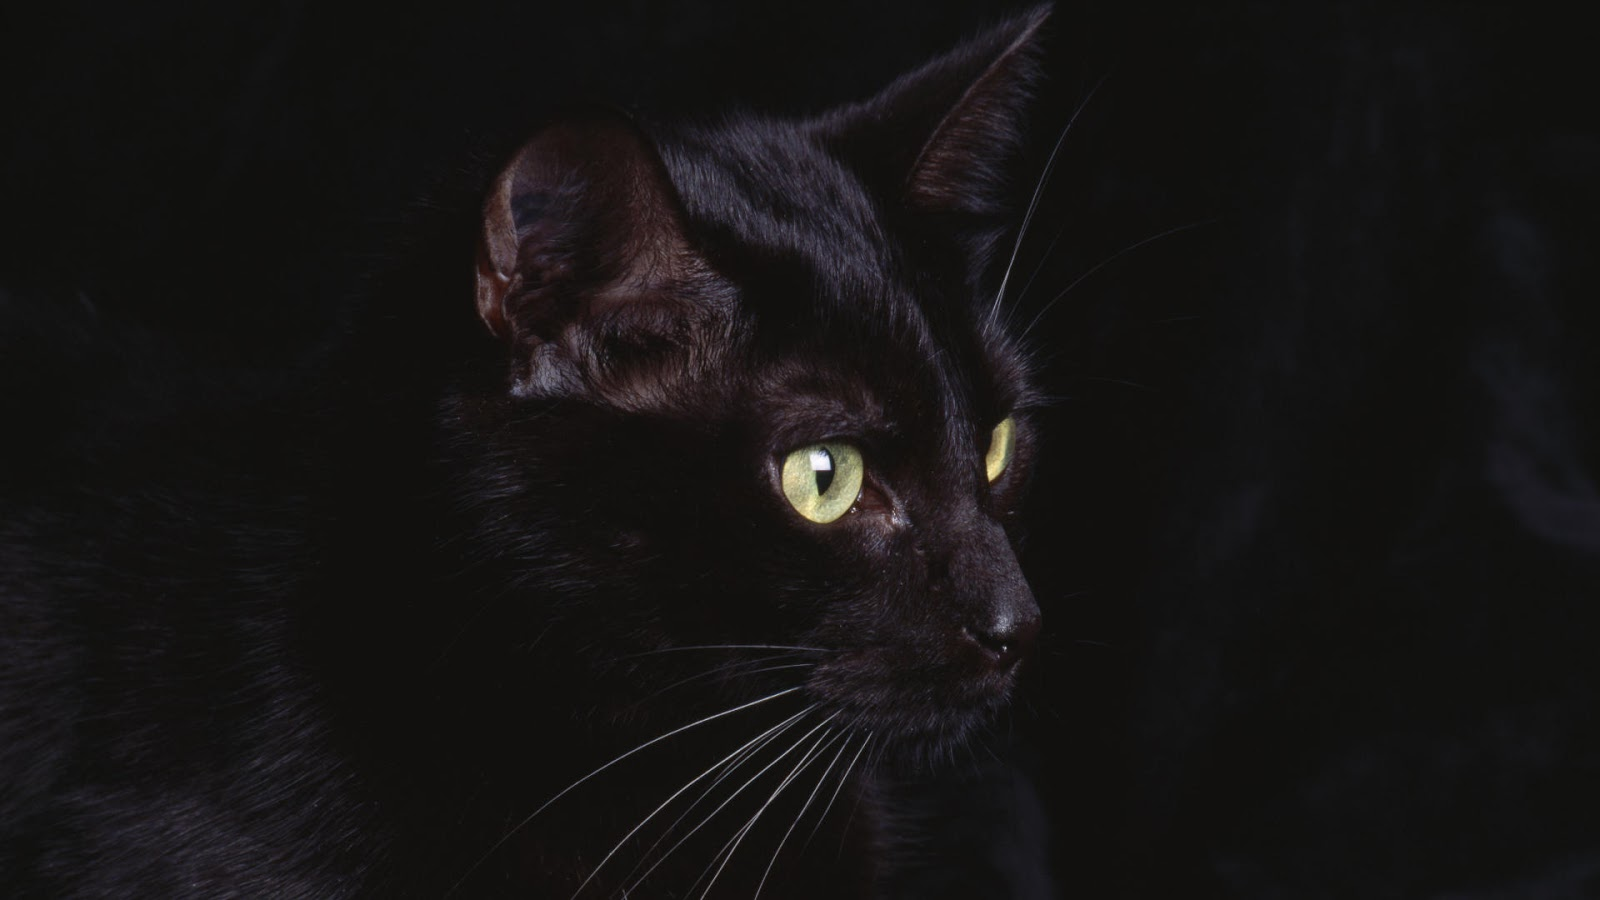 Black Cat 3d Wallpaper Bnb Coin How Does It Work Up